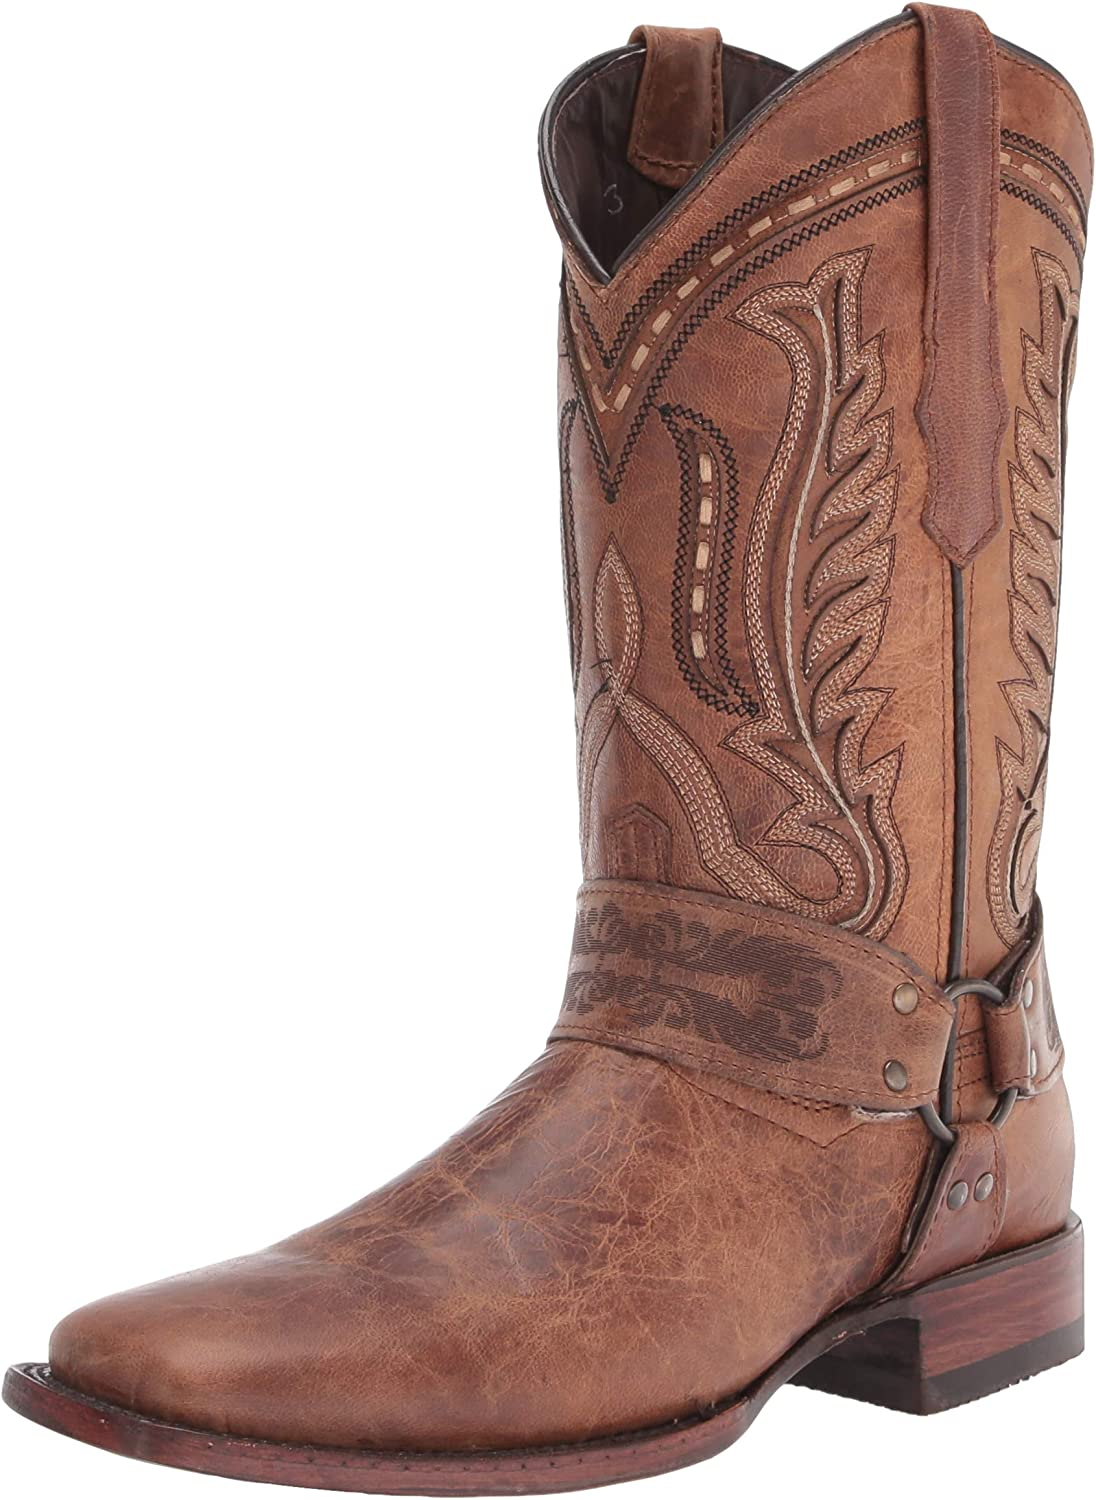 Cowgirl Boots Stores